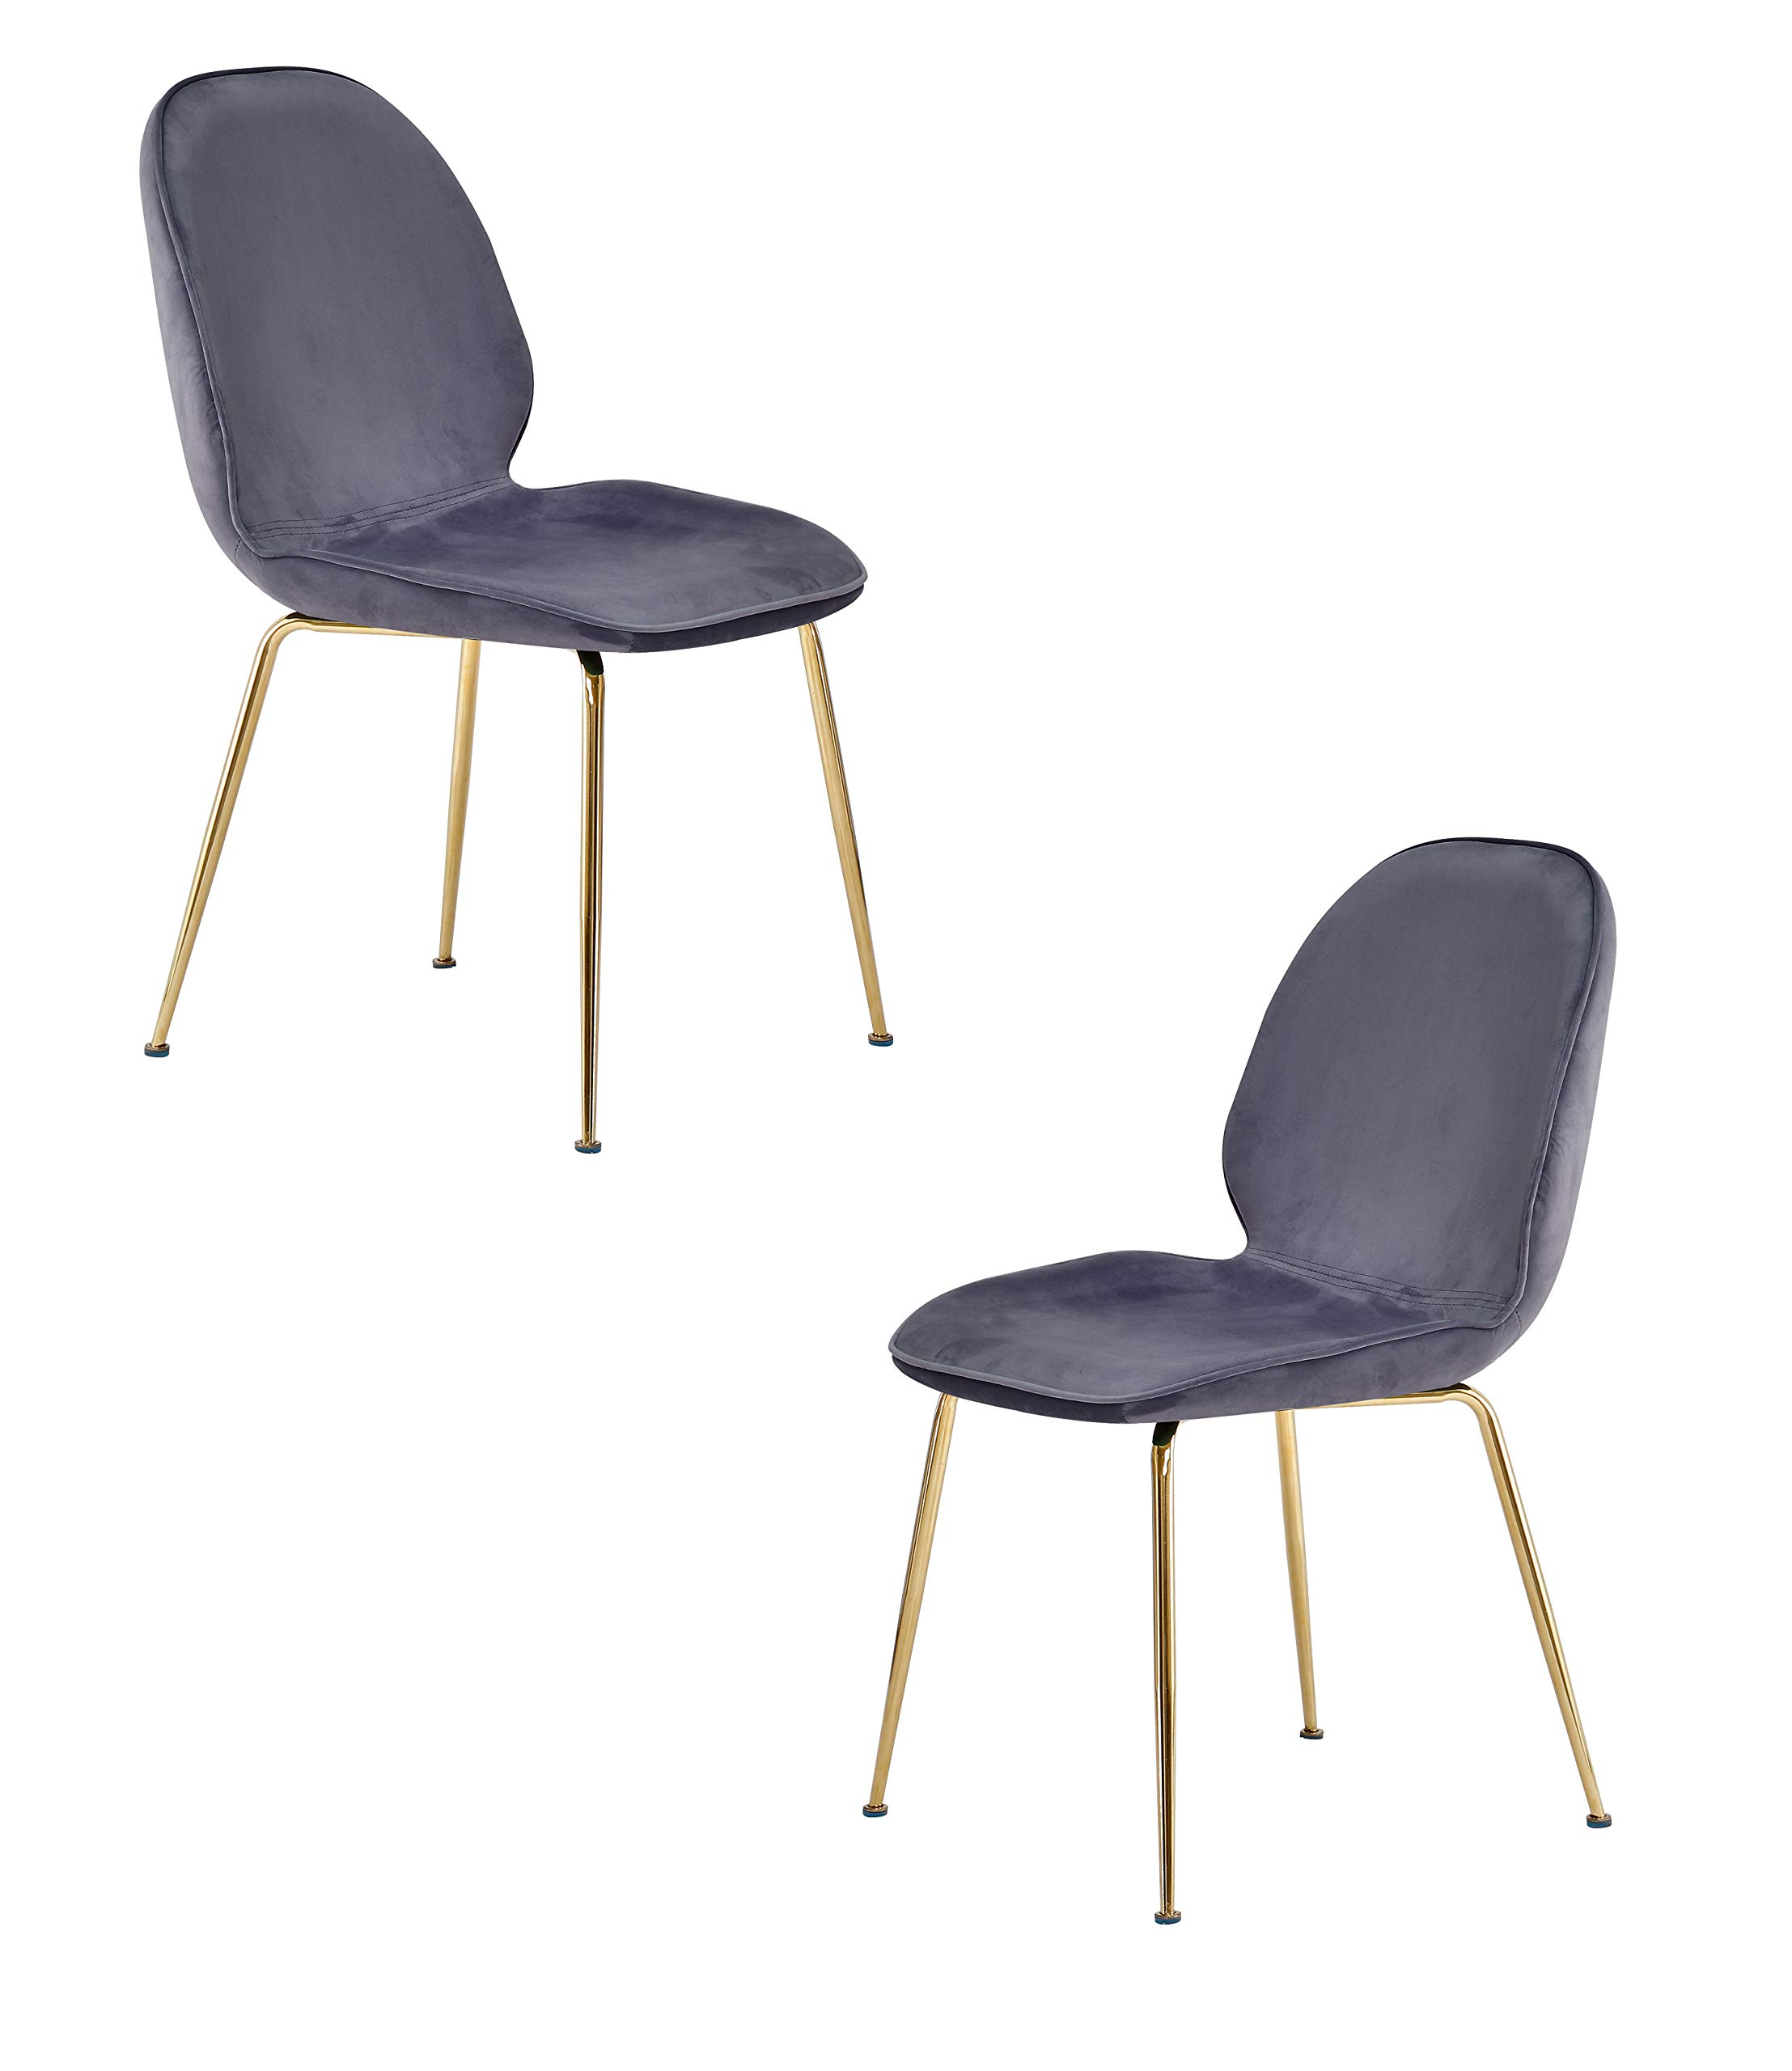 Best Master Furniture Tara Velvet Dining Chairs with Gold Plated Legs, Set of 2, Gray